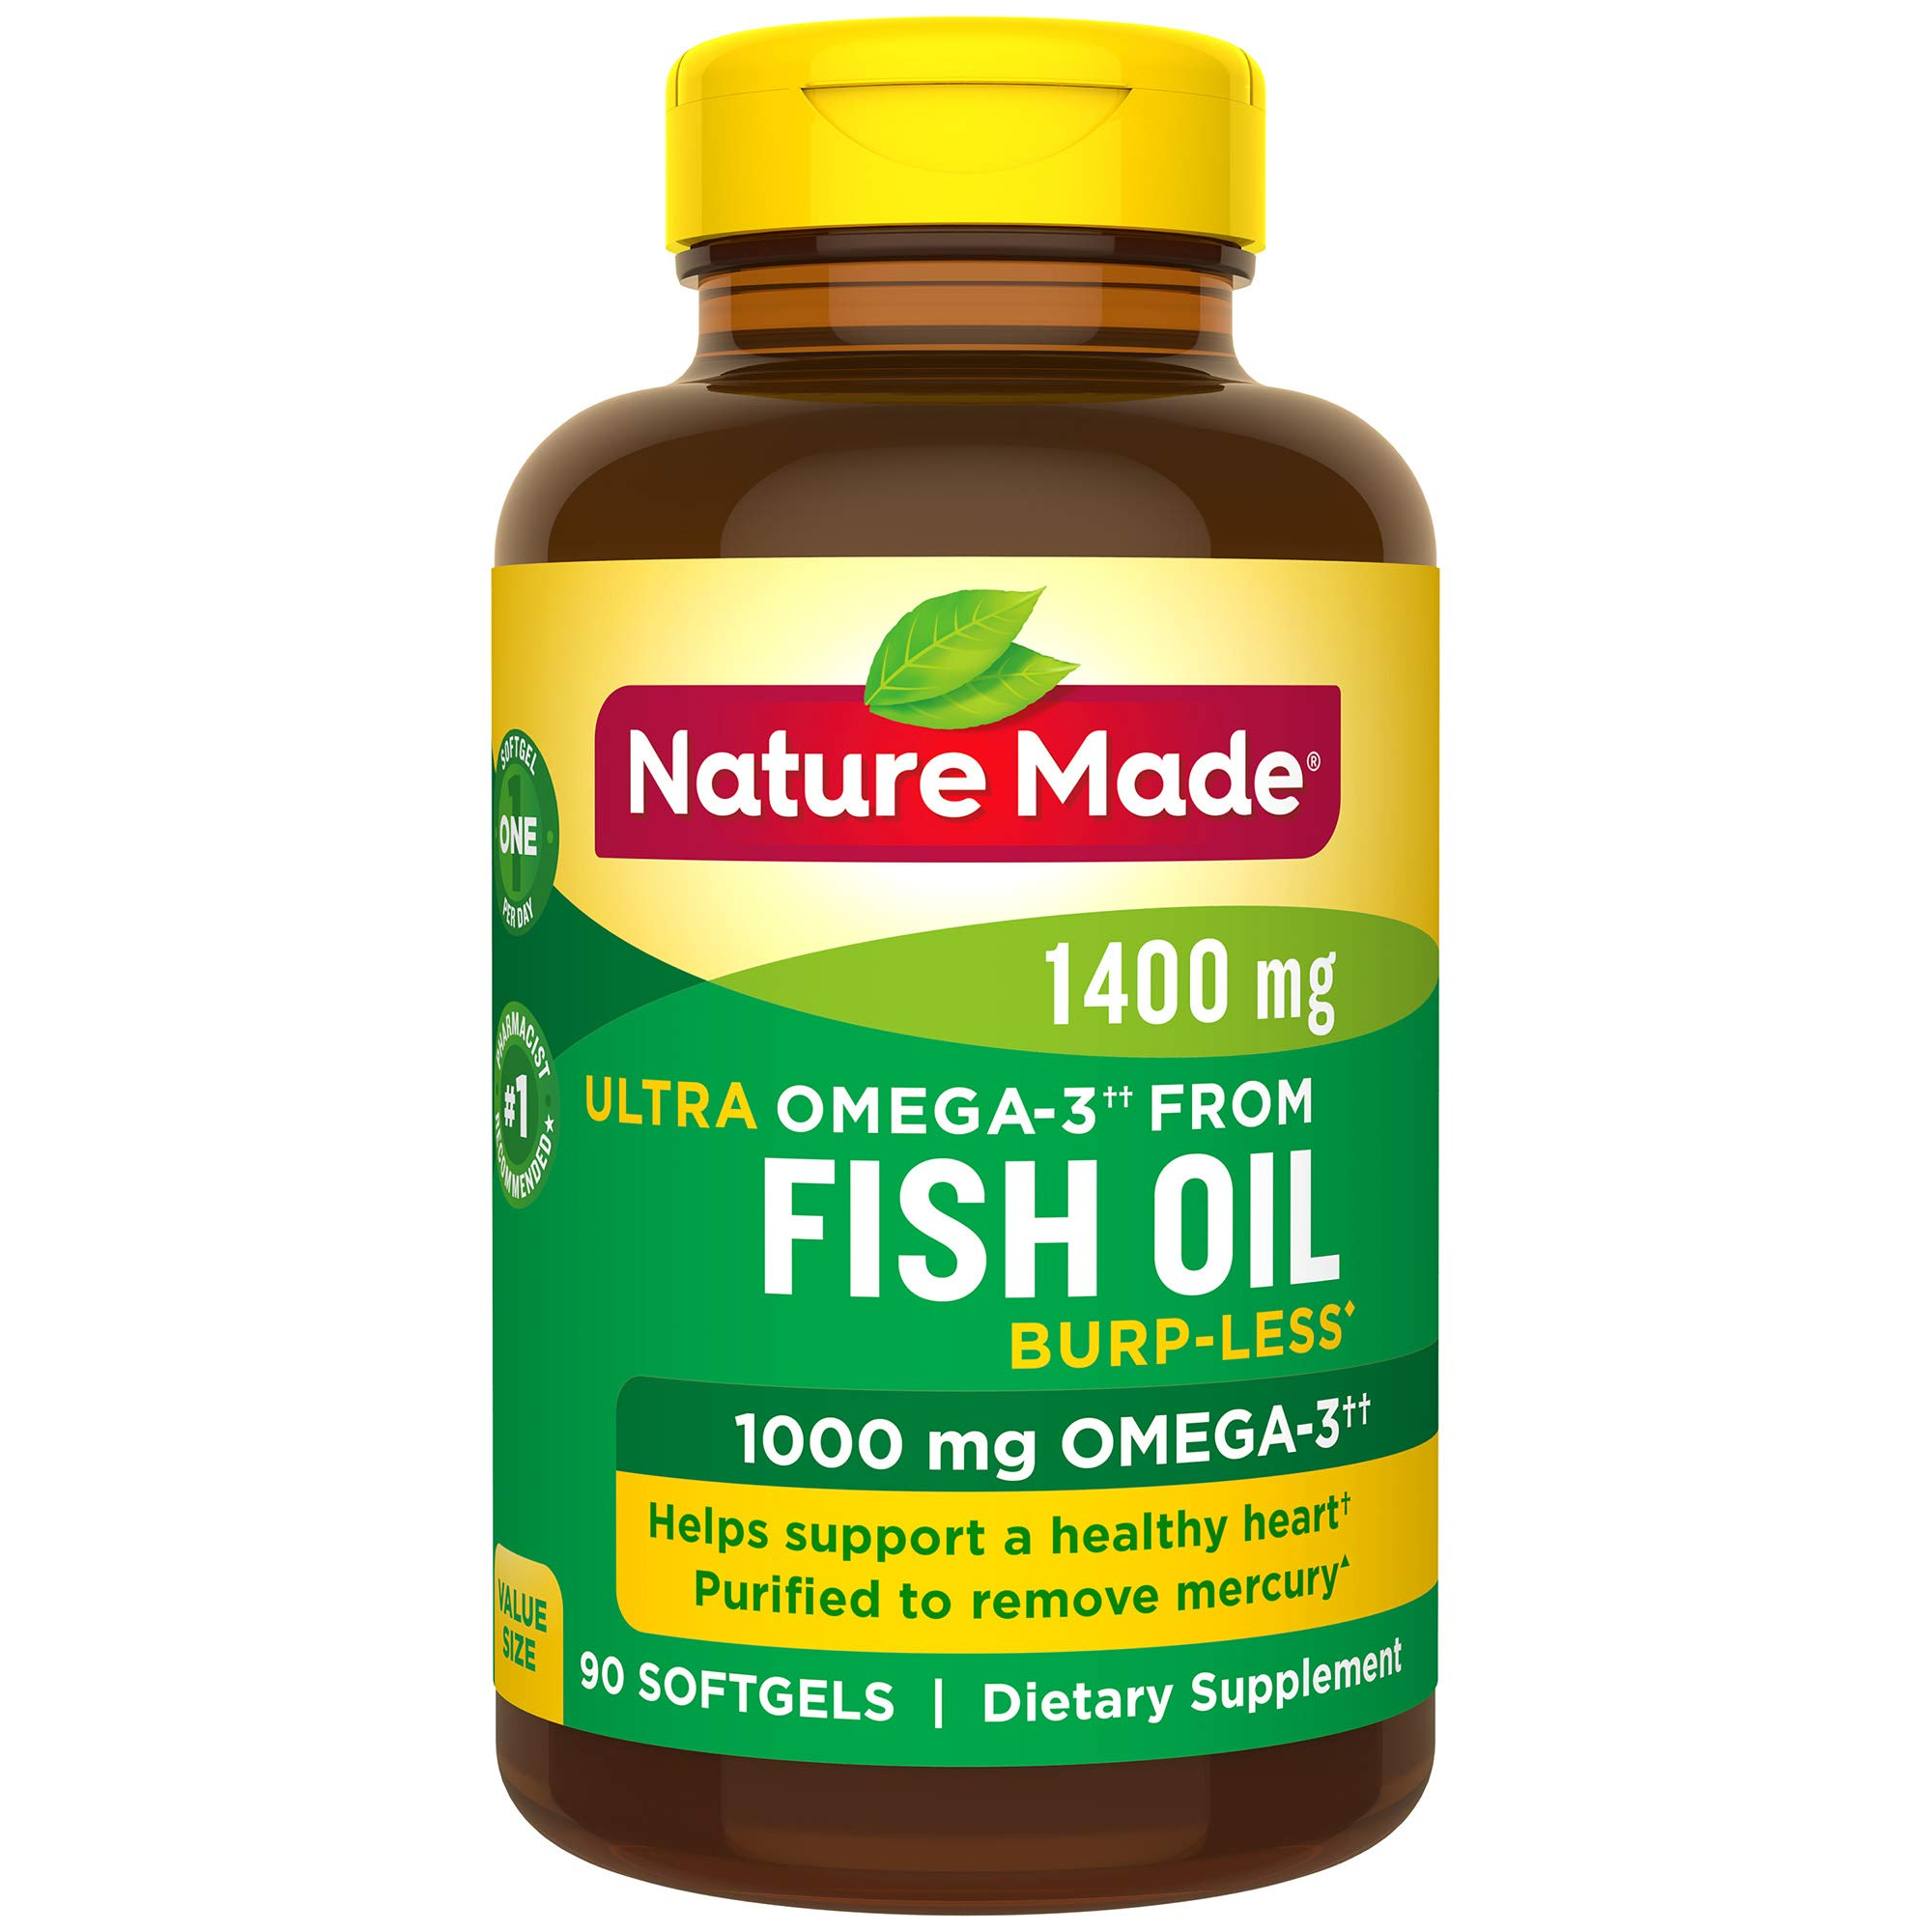 Nature Made Burp-Less Ultra Omega-3†† from Fish Oil 1400 mg Softgels, 90 Count (Packaging May Vary) by Nature Made